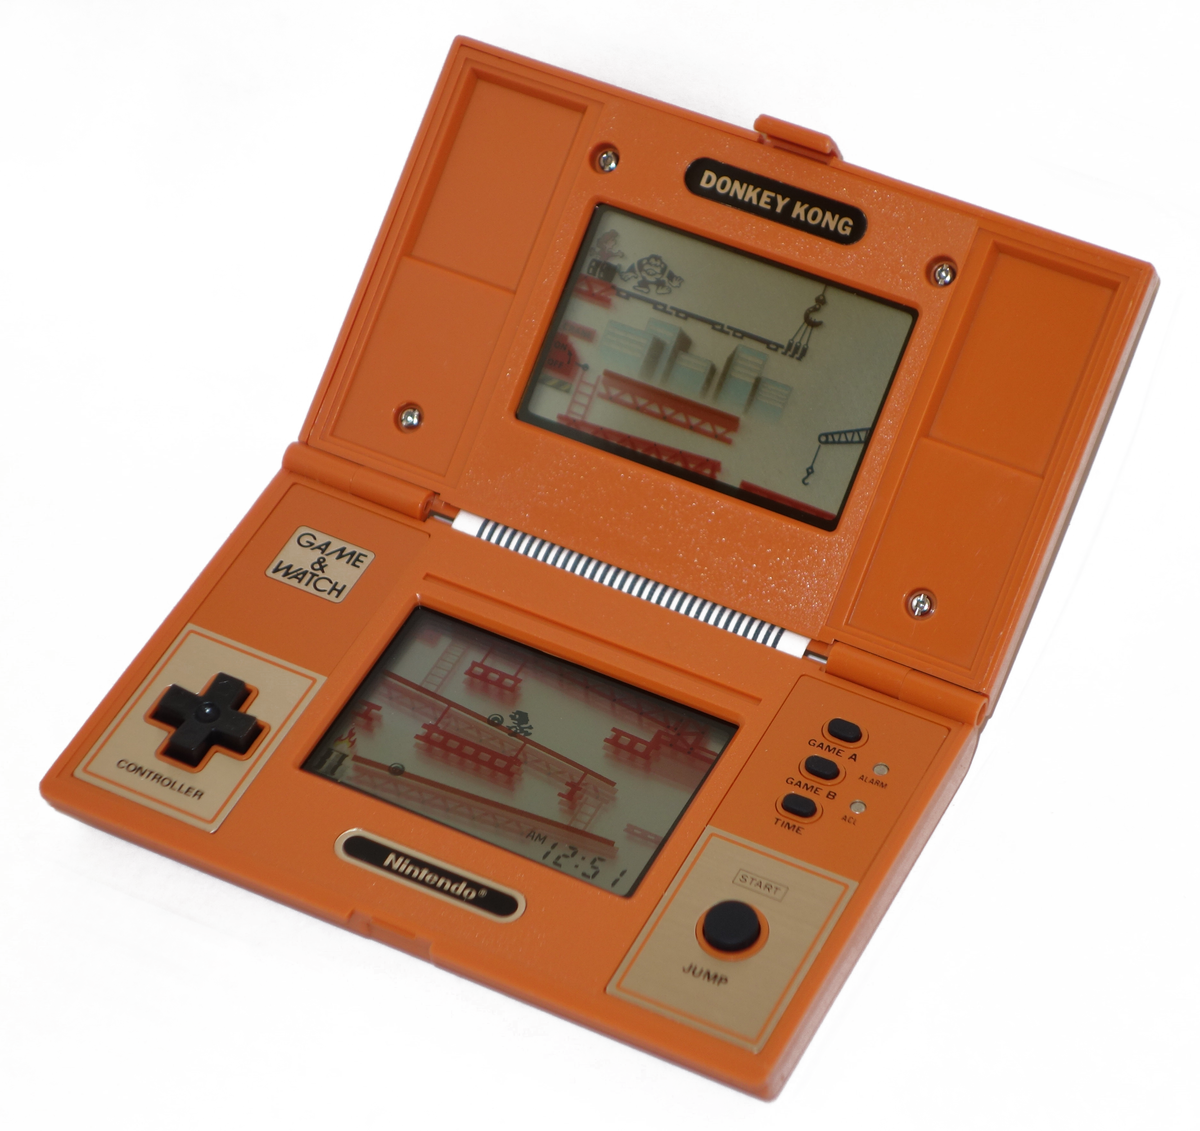 Games: List Of LCD Games Featuring Mario